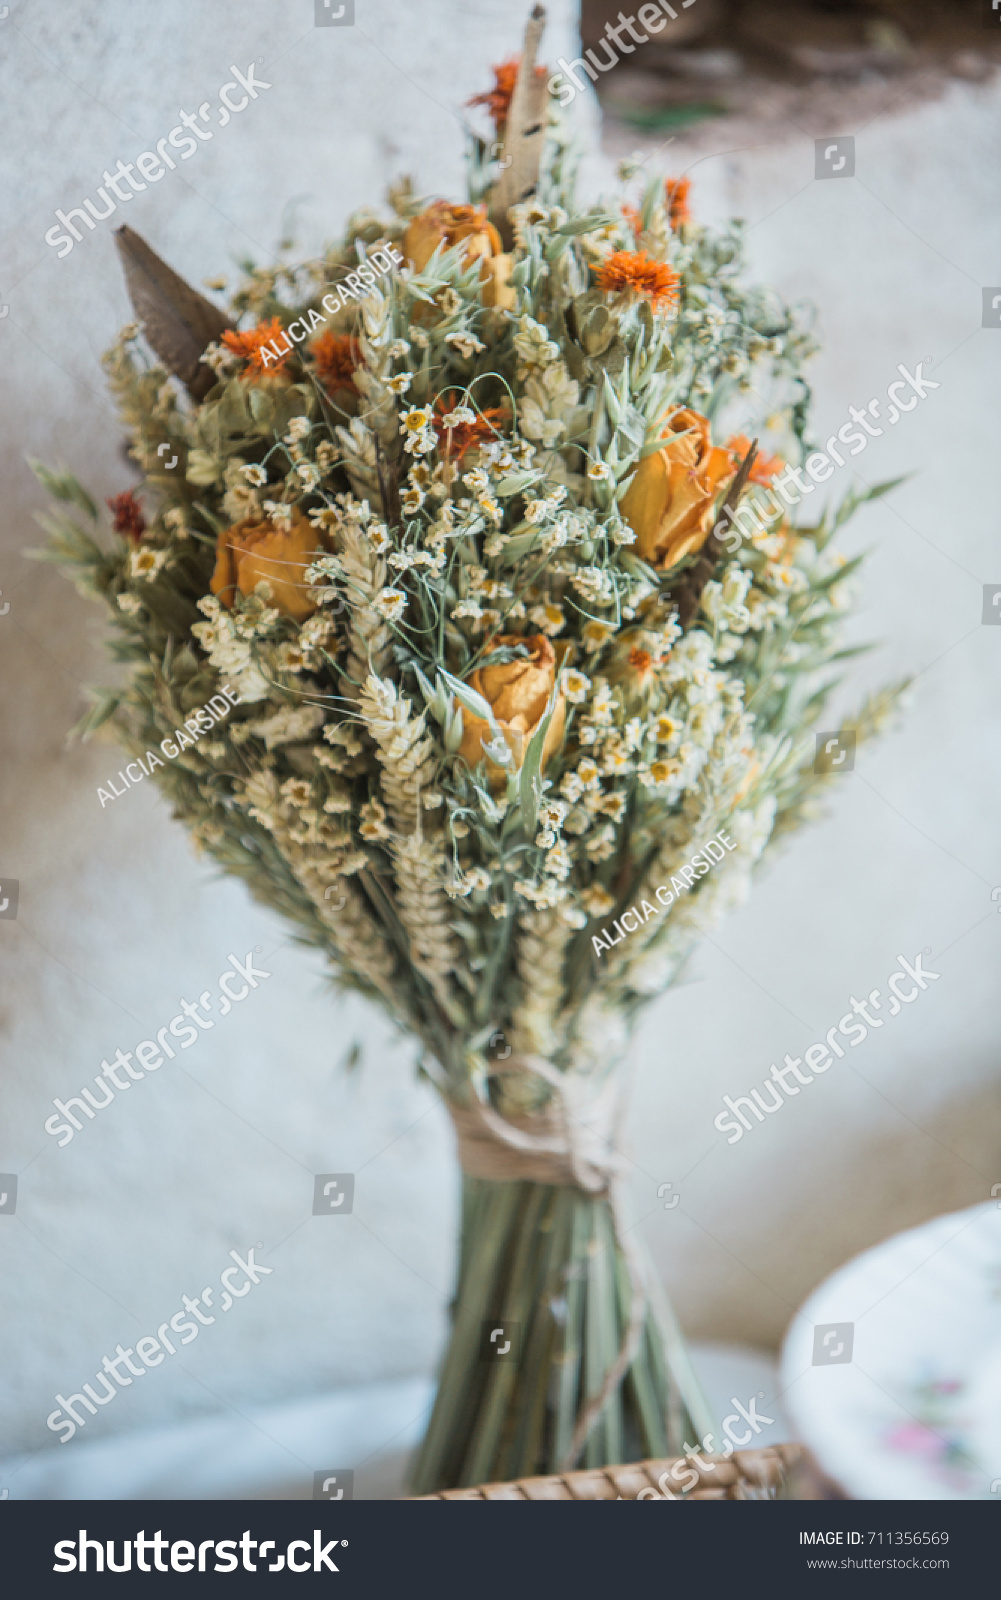 Dried flower bouquet rustic style wedding stock photo royalty free dried flower bouquet for a rustic style wedding izmirmasajfo